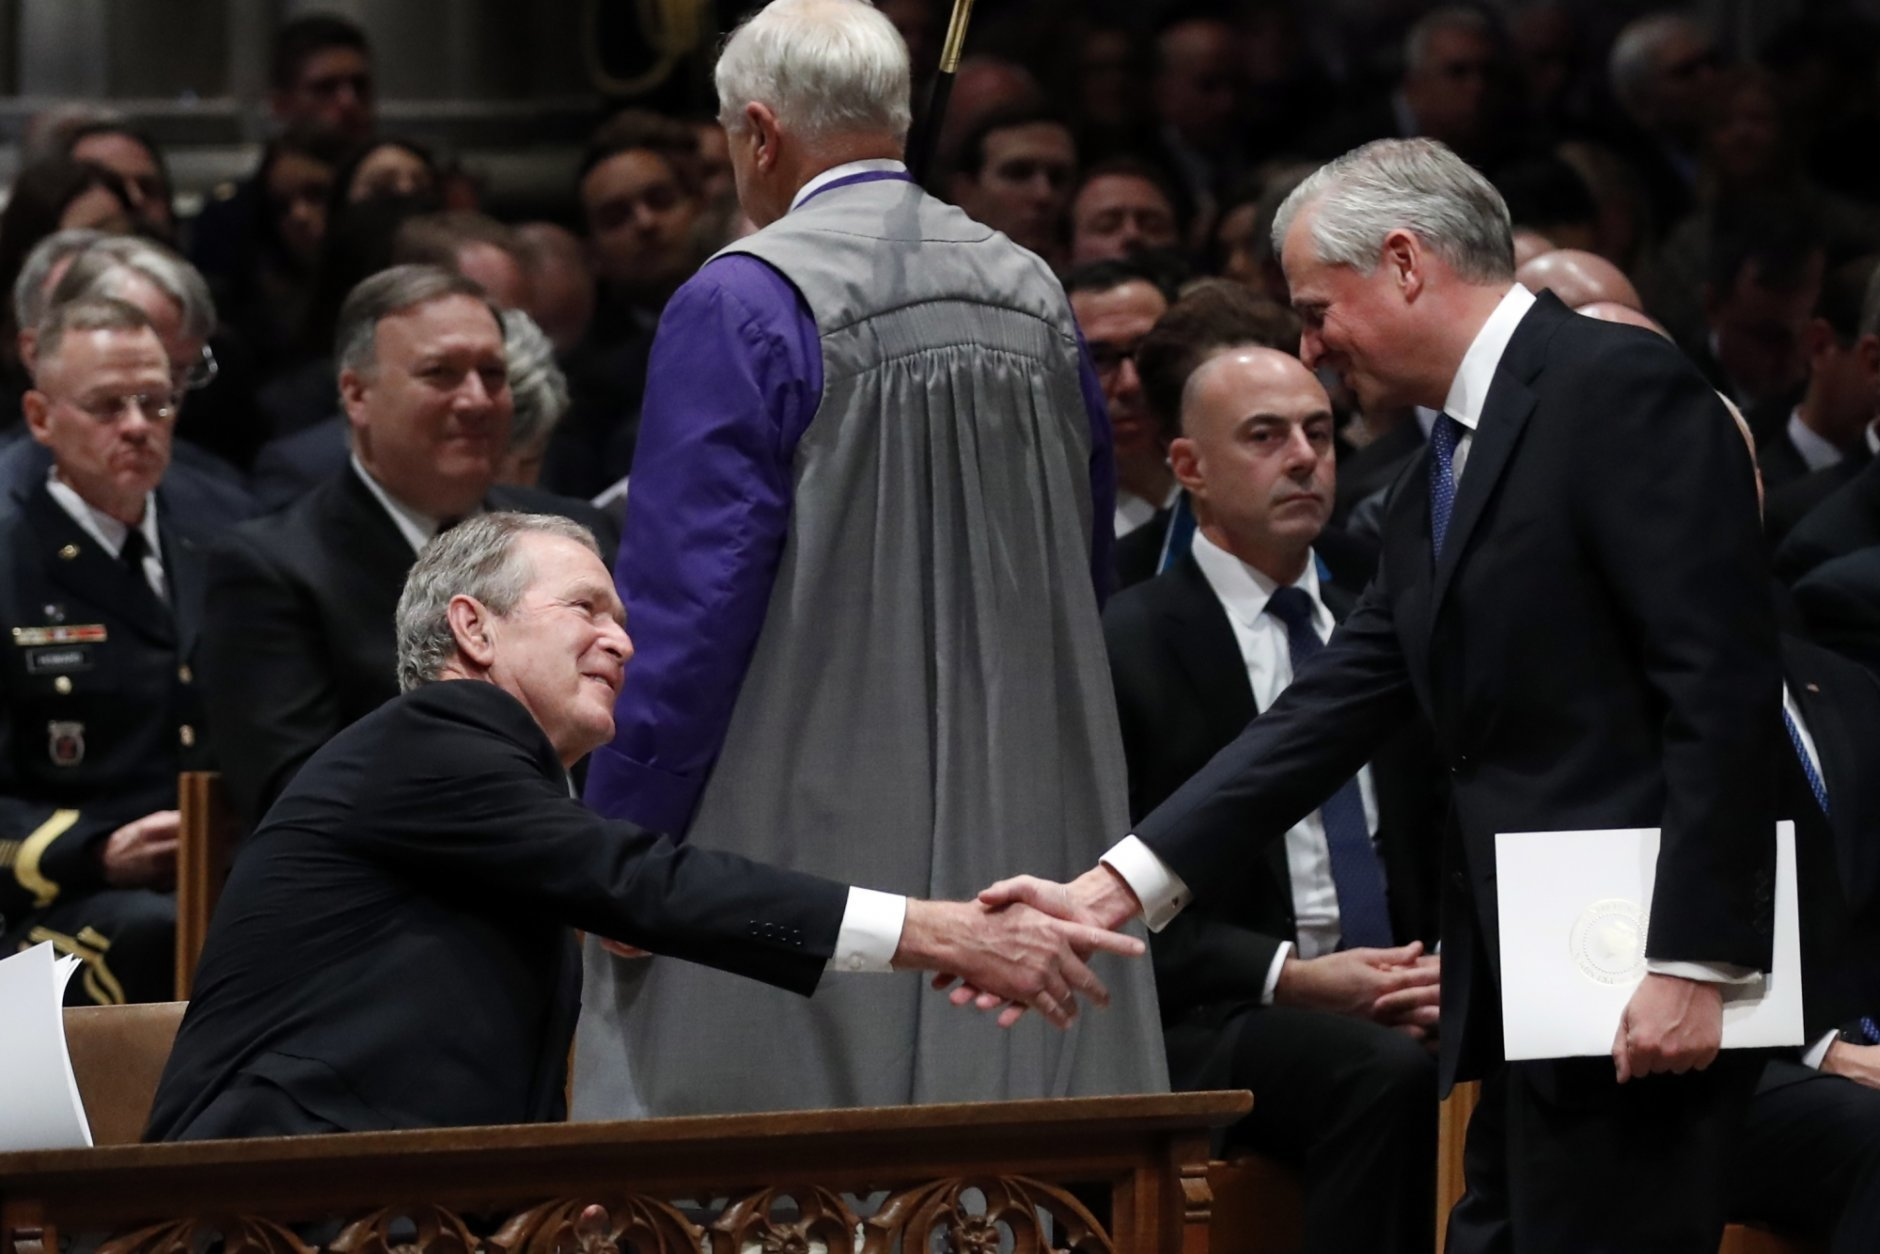 Presidential biographer Jon Meacham, shakes hands with former President George Bush after speaking during the State Funeral for former President George H.W. Bush at the National Cathedral, Wednesday, Dec. 5, 2018, in Washington.(AP Photo/Alex Brandon, Pool)